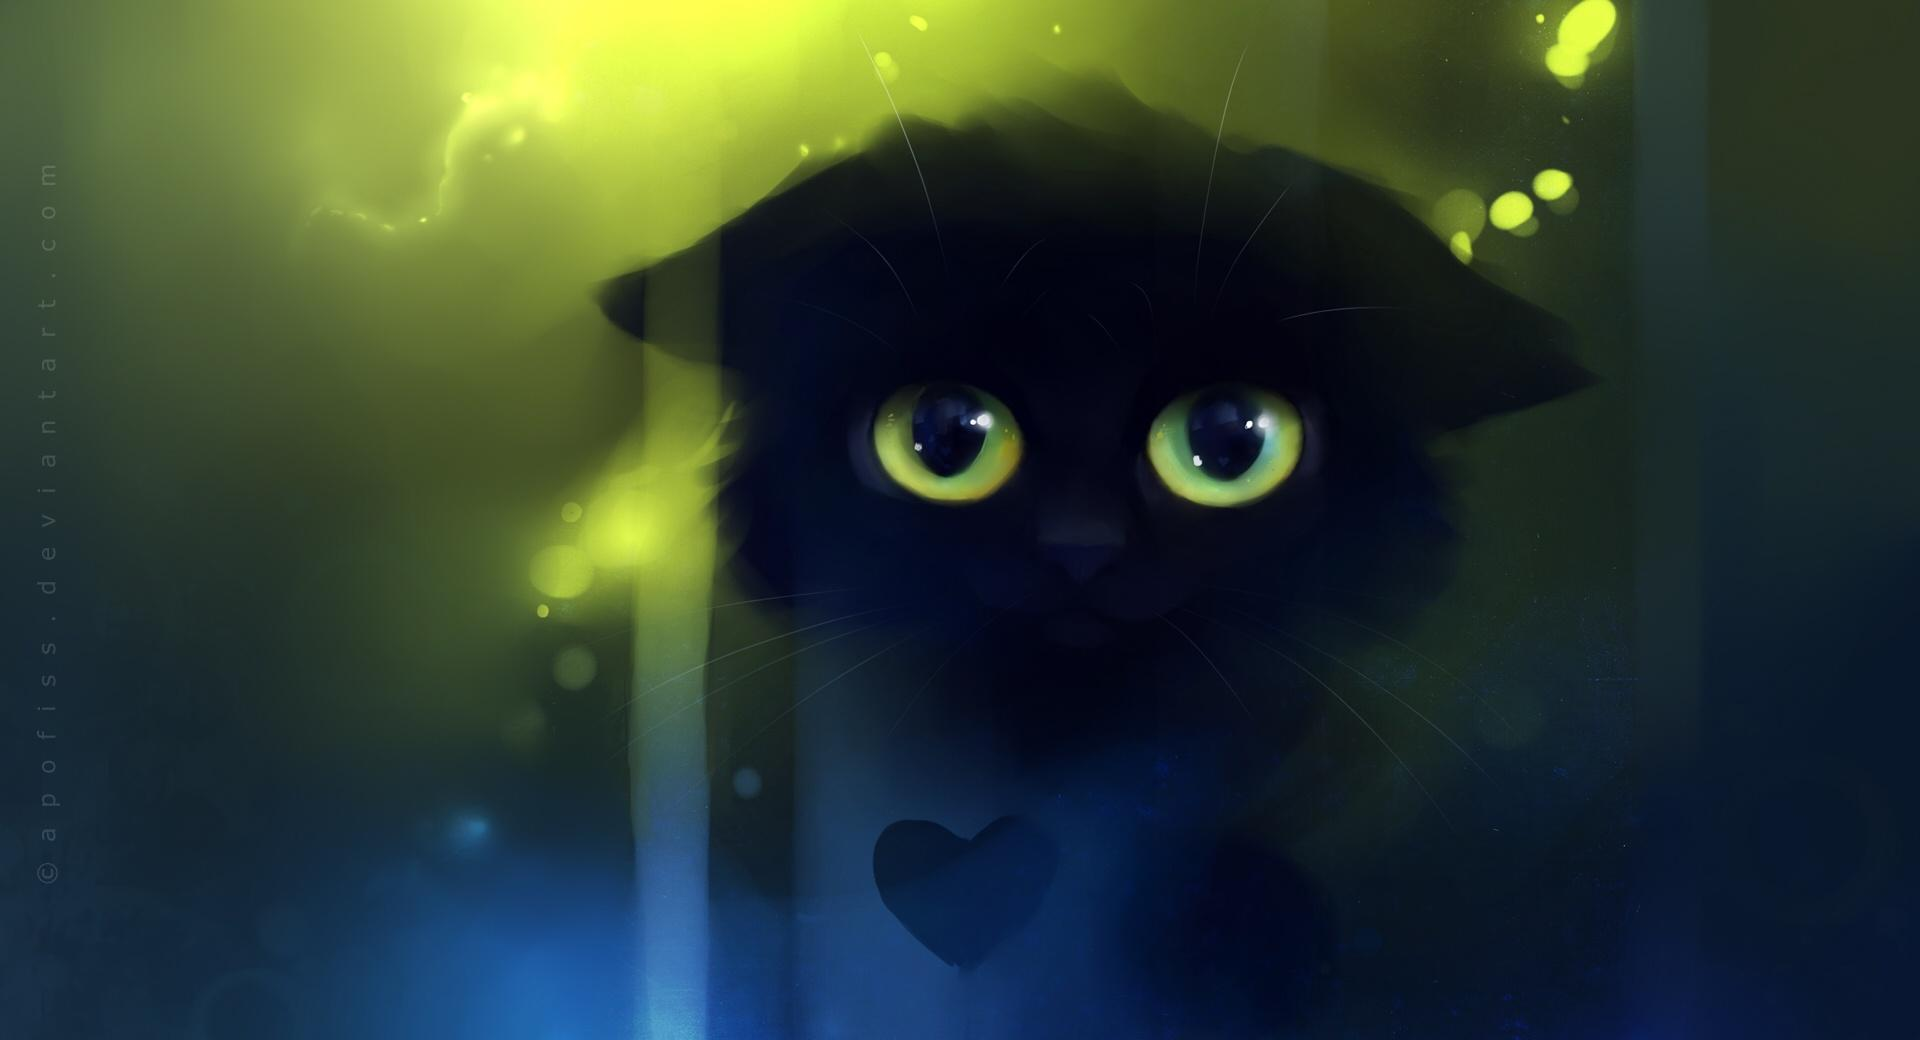 Sad Kitty Painting wallpapers HD quality